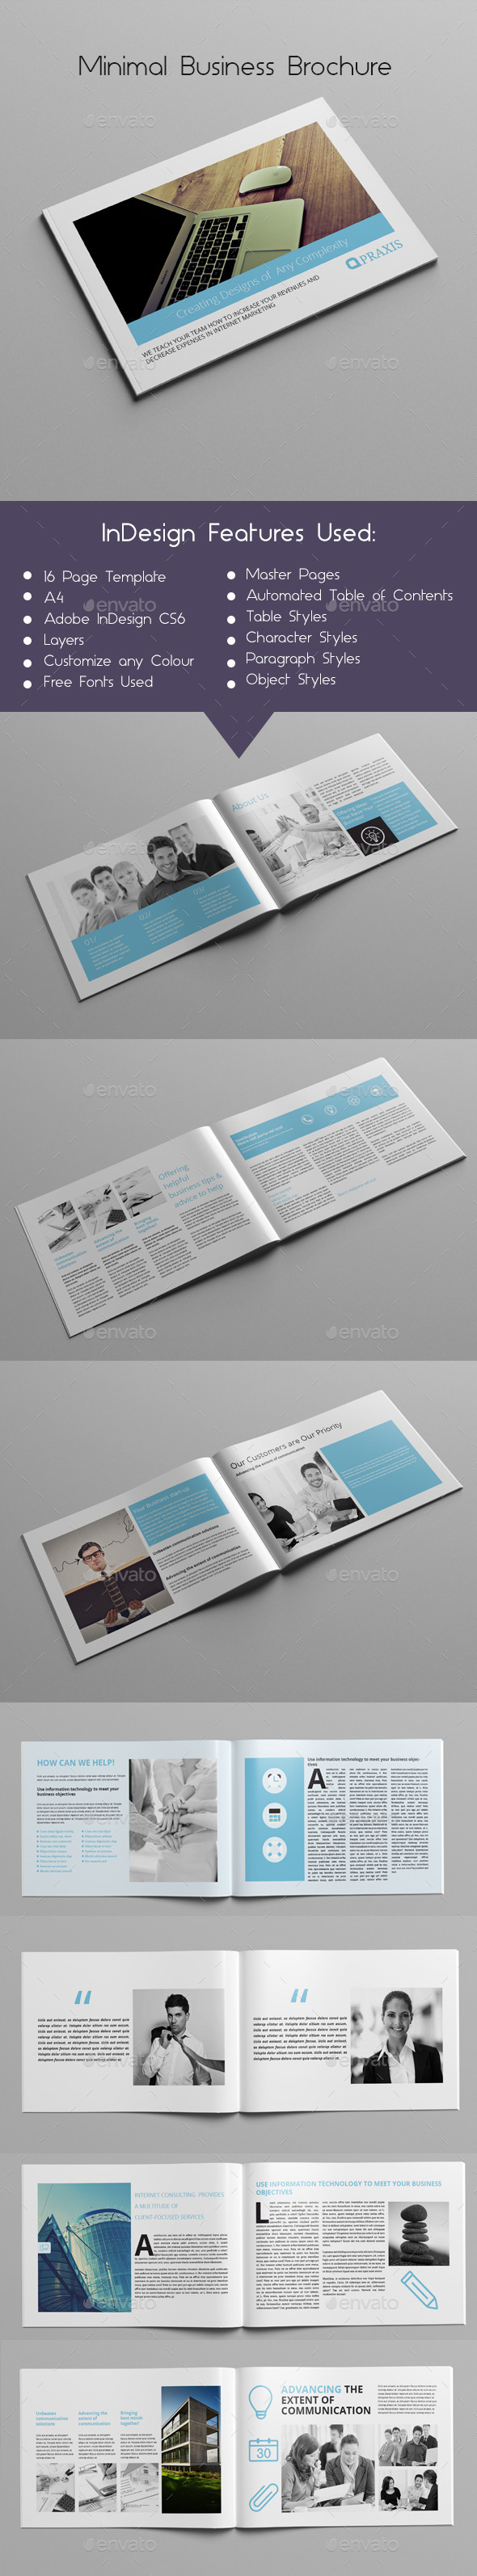 GraphicRiver Minimal Business Brochure 10432572